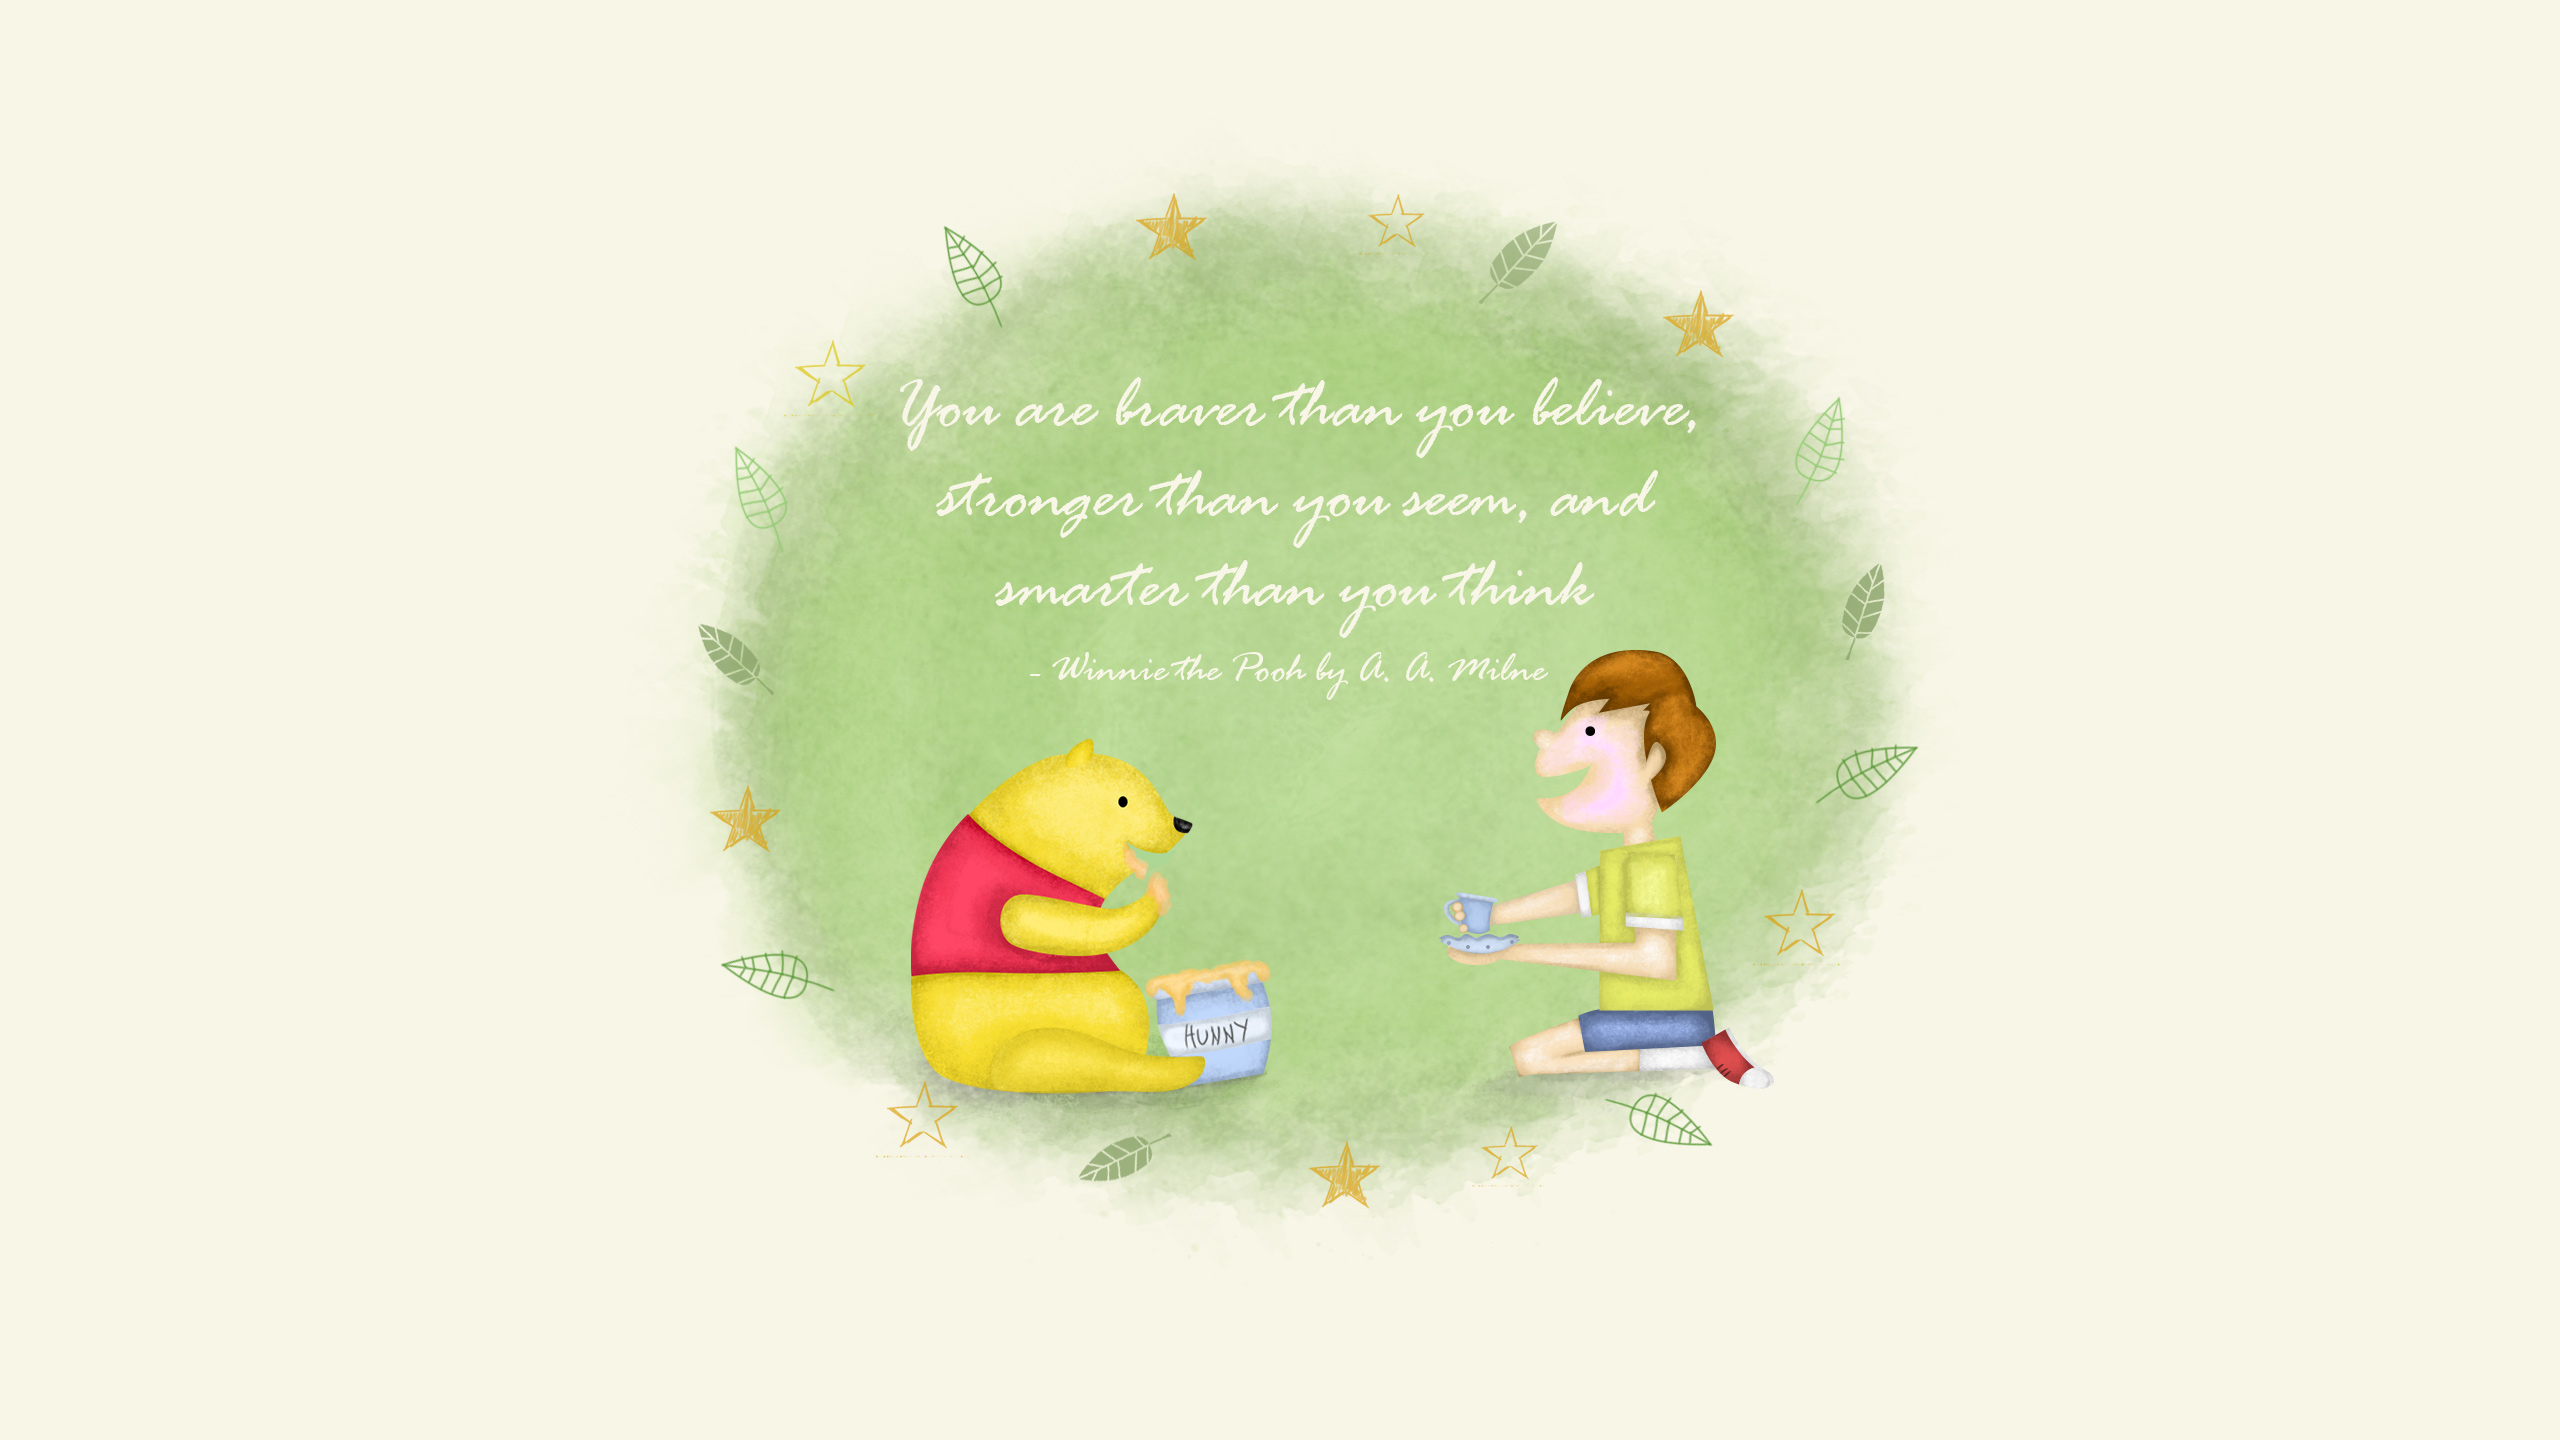 Blessing From Winnie The Pooh - HD Wallpaper